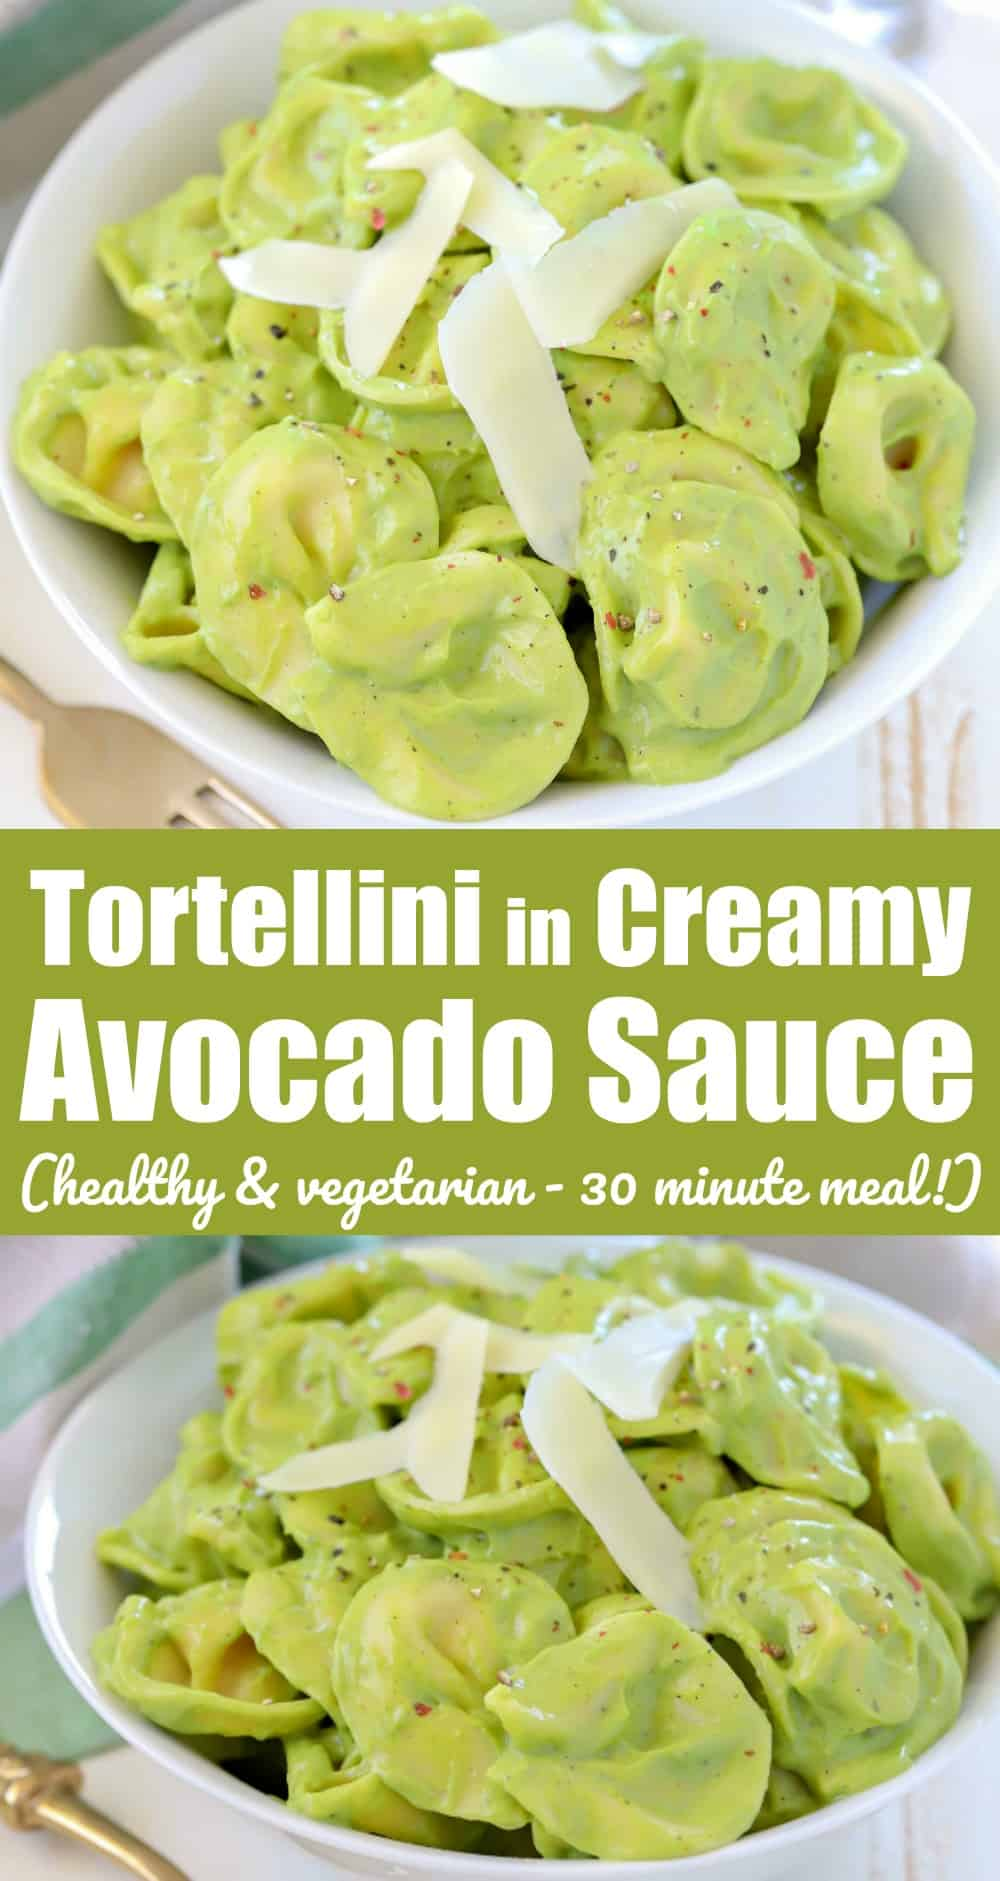 How about some tortellini covered in a creamy avocado pasta sauce?! Cooked tortellini is tossed in a creamy sauce made from the ever adaptable avocado! You will love the gorgeous green color and creaminess but it doesn't have a super avocado taste. This is a fantastic high protein yet vegetarian dinner any night of the week that the whole family will love. Plus? It contains veggies your family won't even know are there! WINNING!!!